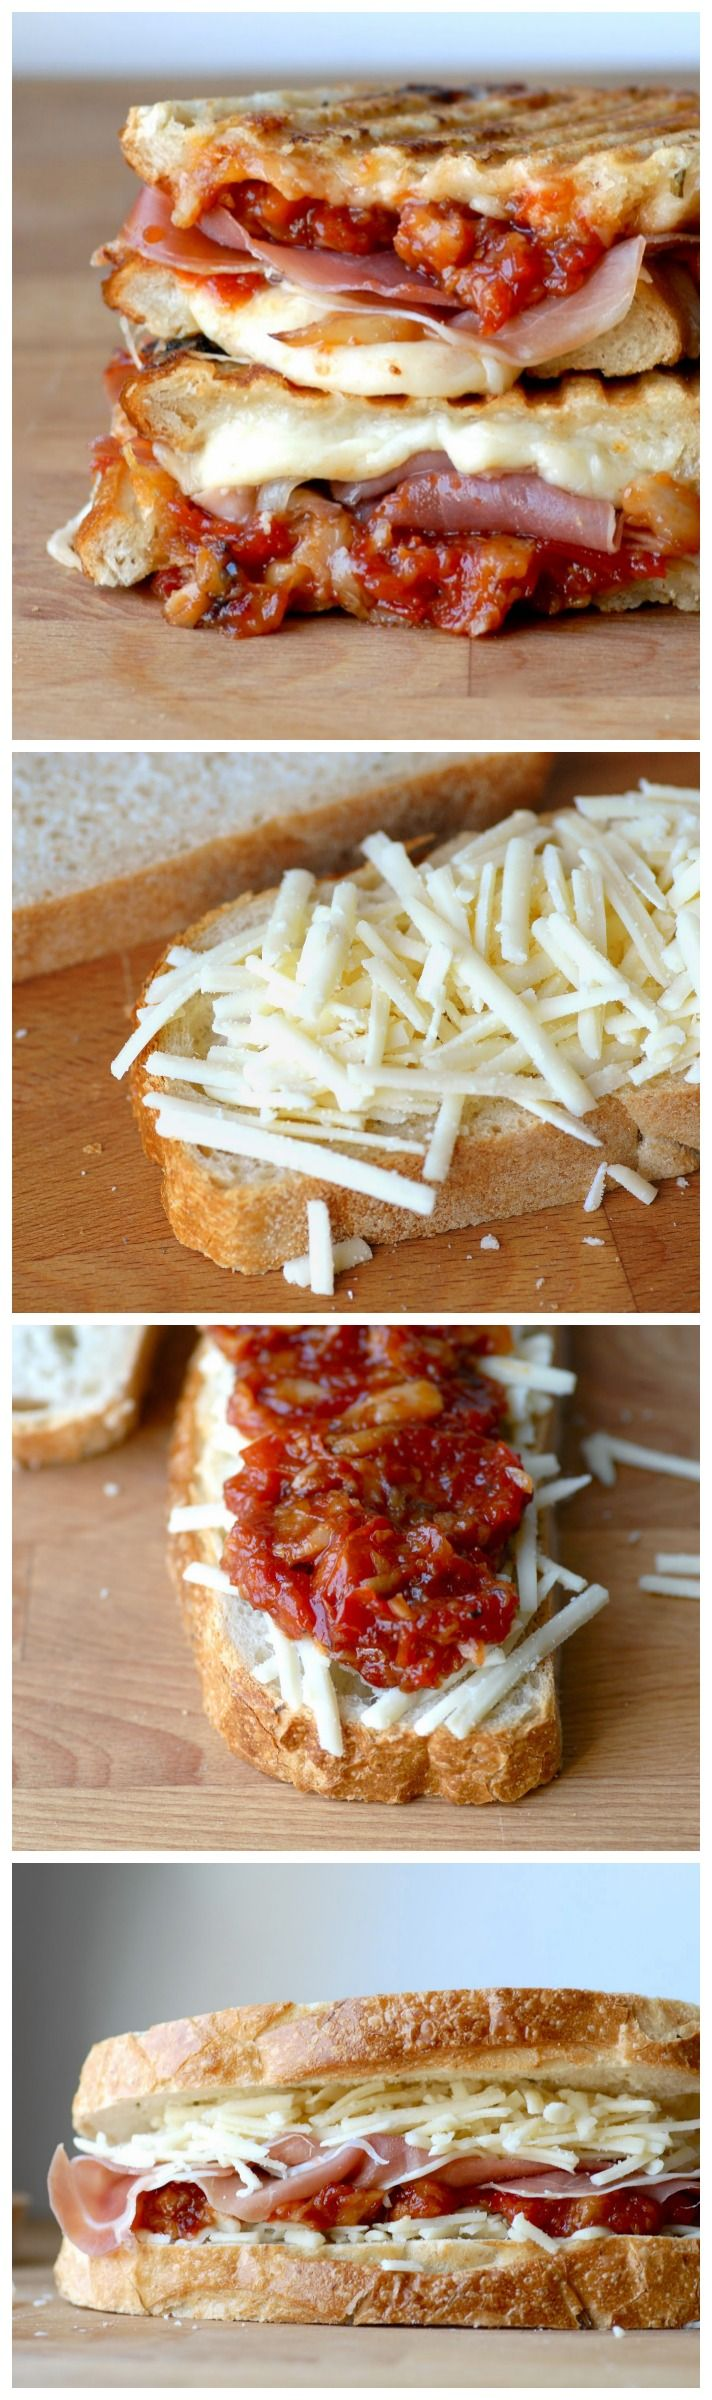 Gruyere, Serrano Jamon, Candied Garlic and Tomato Chutney Grilled Cheese Sandwich #recipe #grilledcheese